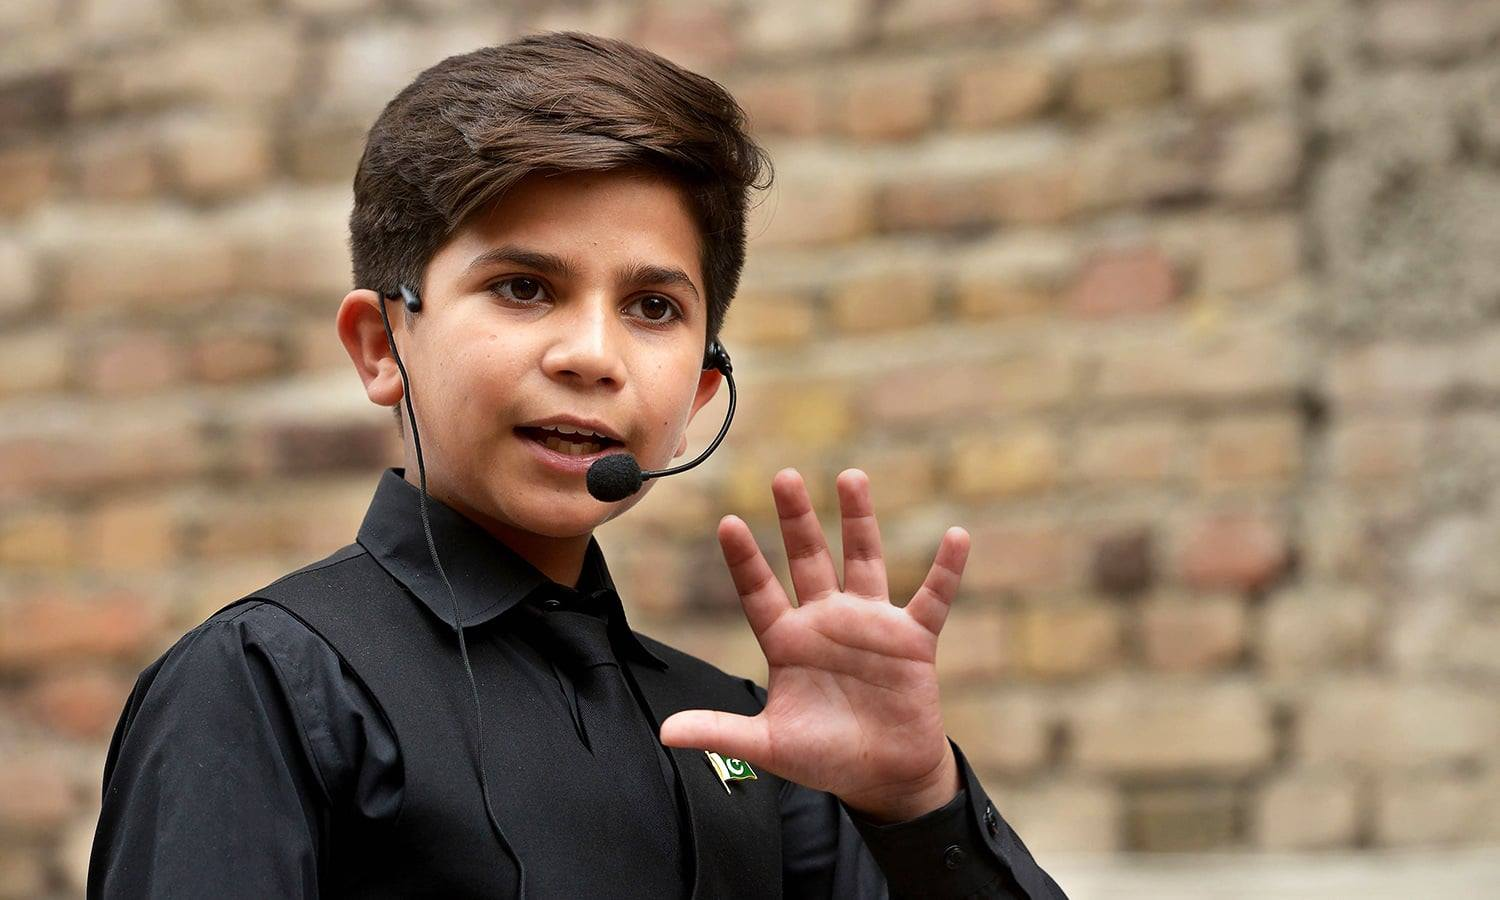 Meet Hammad Safi, the 11-year-old motivational coach who has Pakistan enchanted